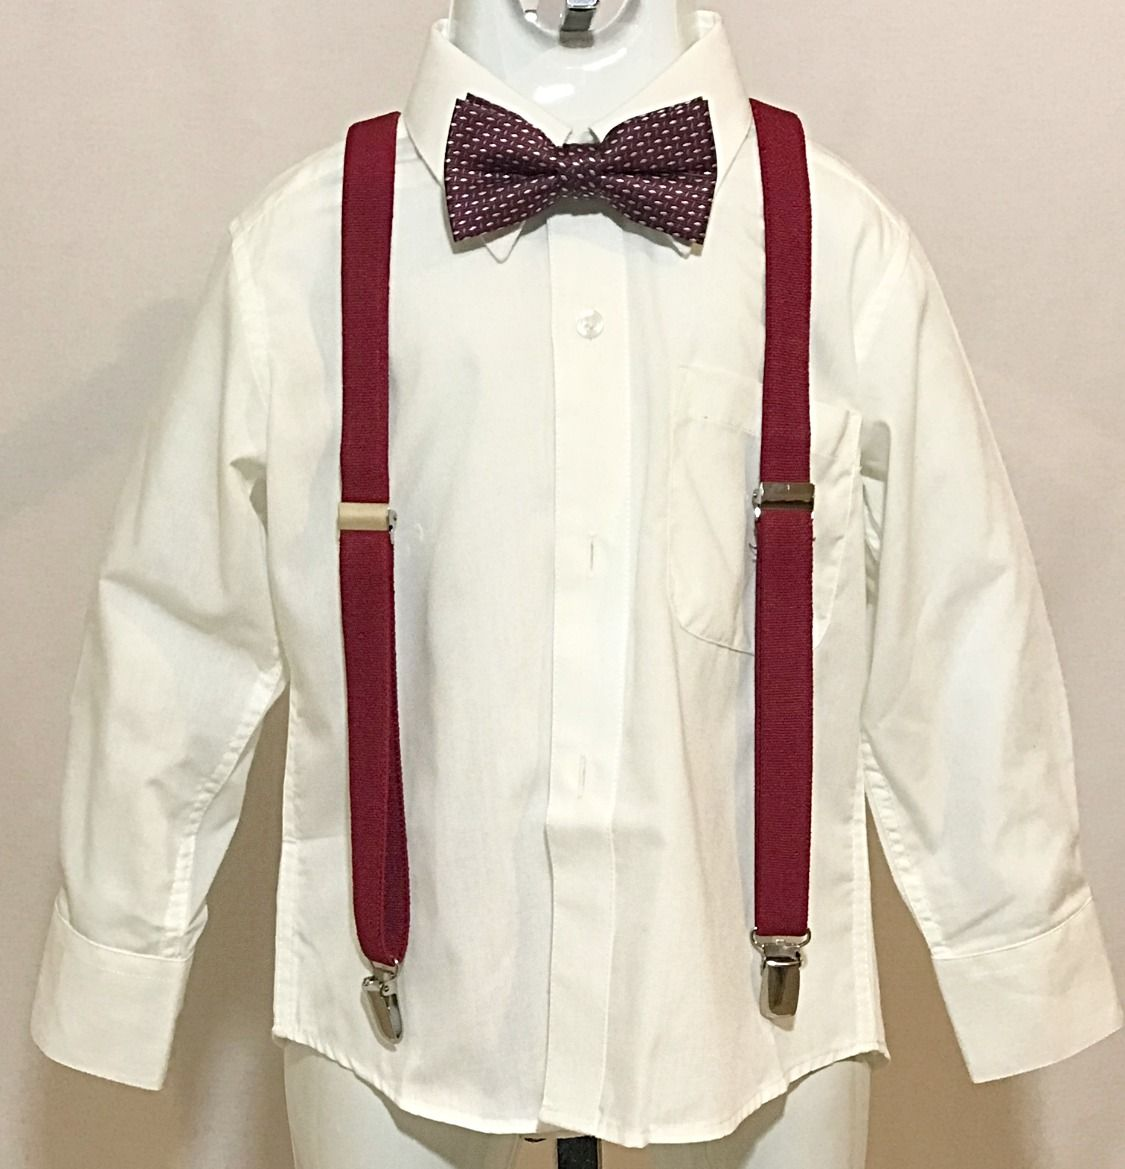 Off white long sleeve dress shirt with burgundy suspenders